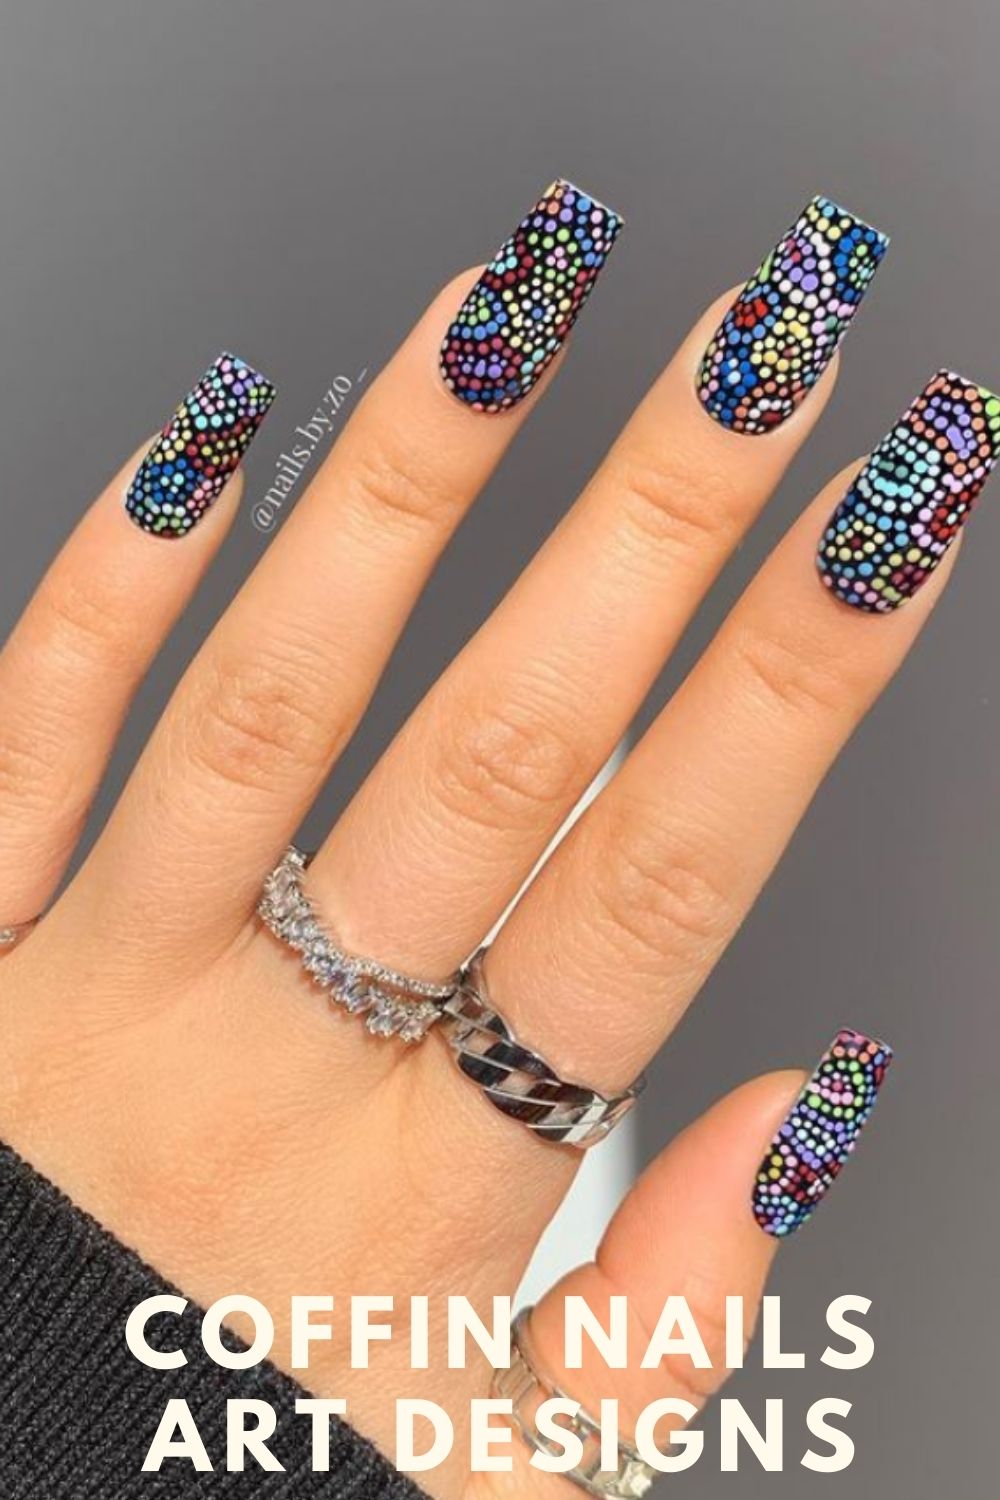 Coffin nail design with geometric pattern